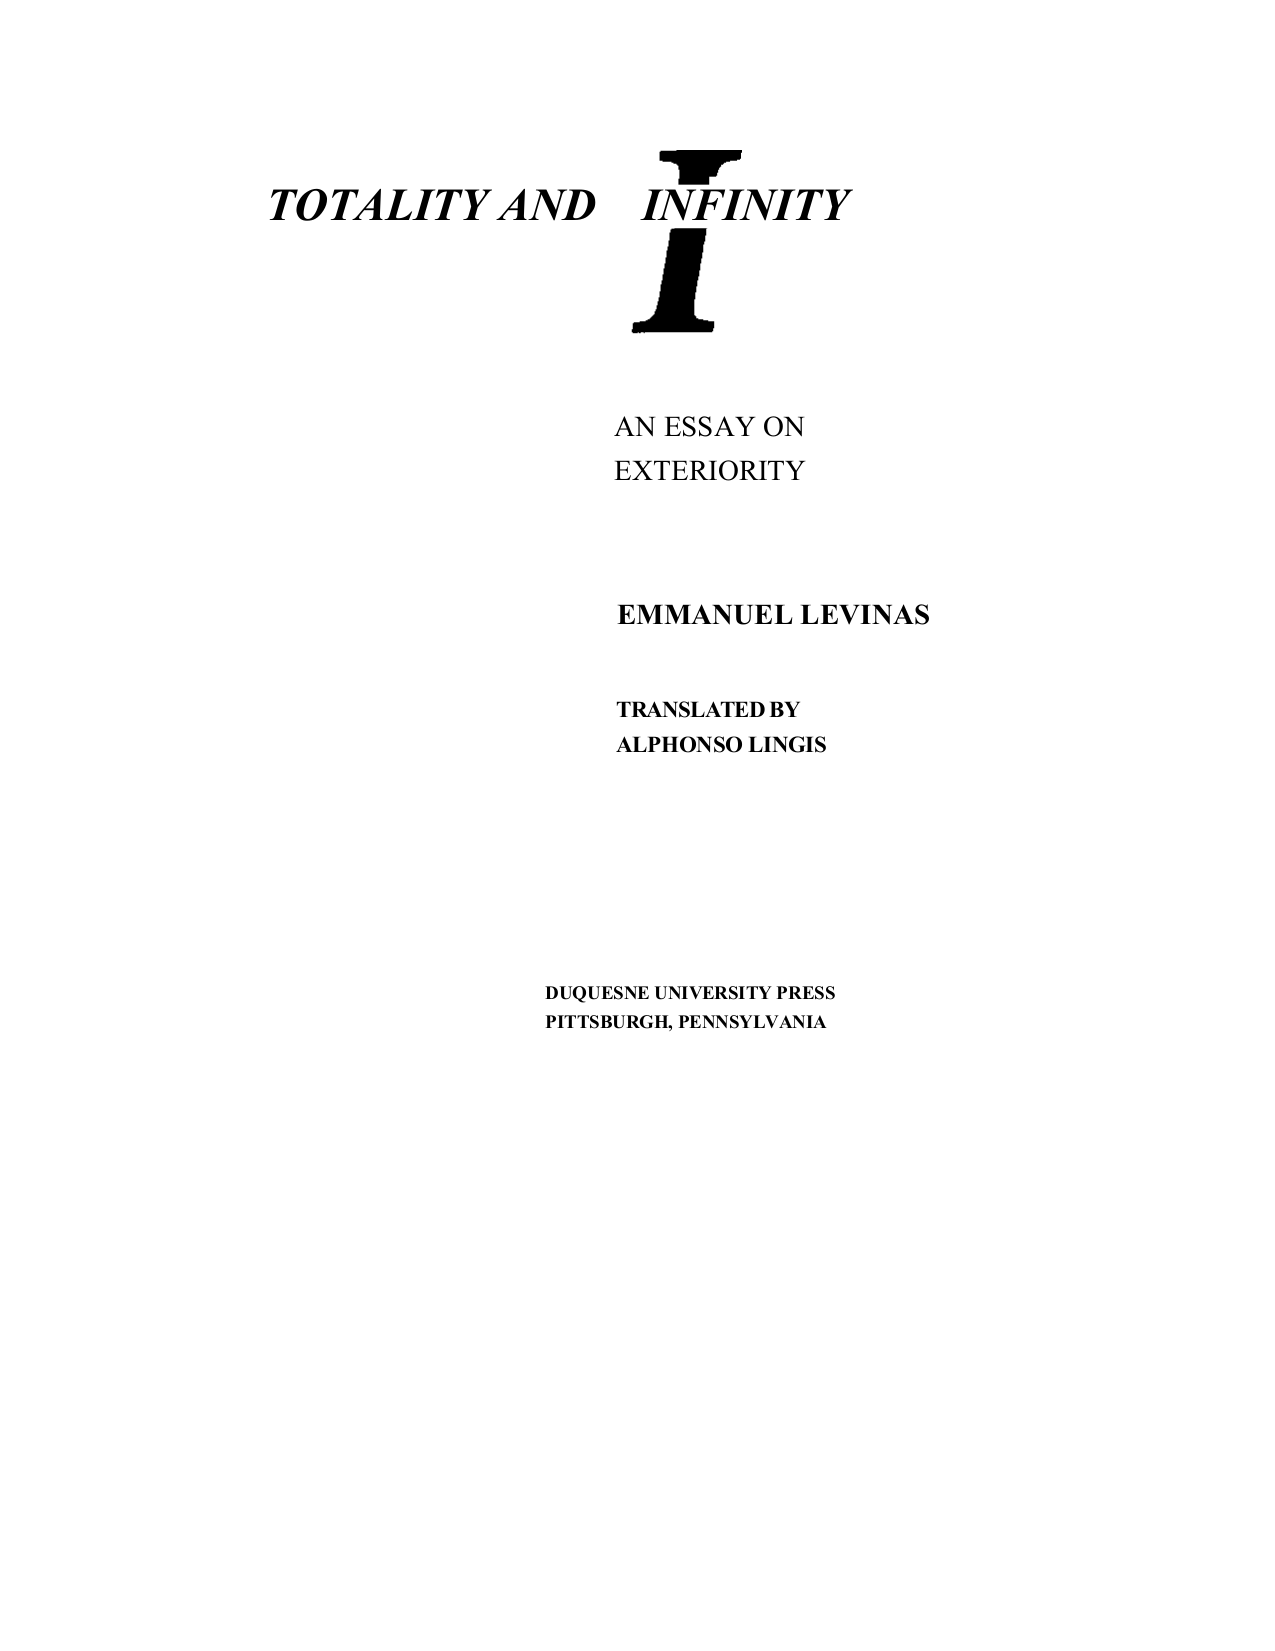 """emmanuel levinas totality and infinity an essay on exteriority Emmanuel levinas elaborates in his magnum opus, totality and infinity: an essay on exteriority, the groundwork for an ethics of the human face, """"choosing as basis, the ethical basis of society, the self's responsibility for the other""""1."""